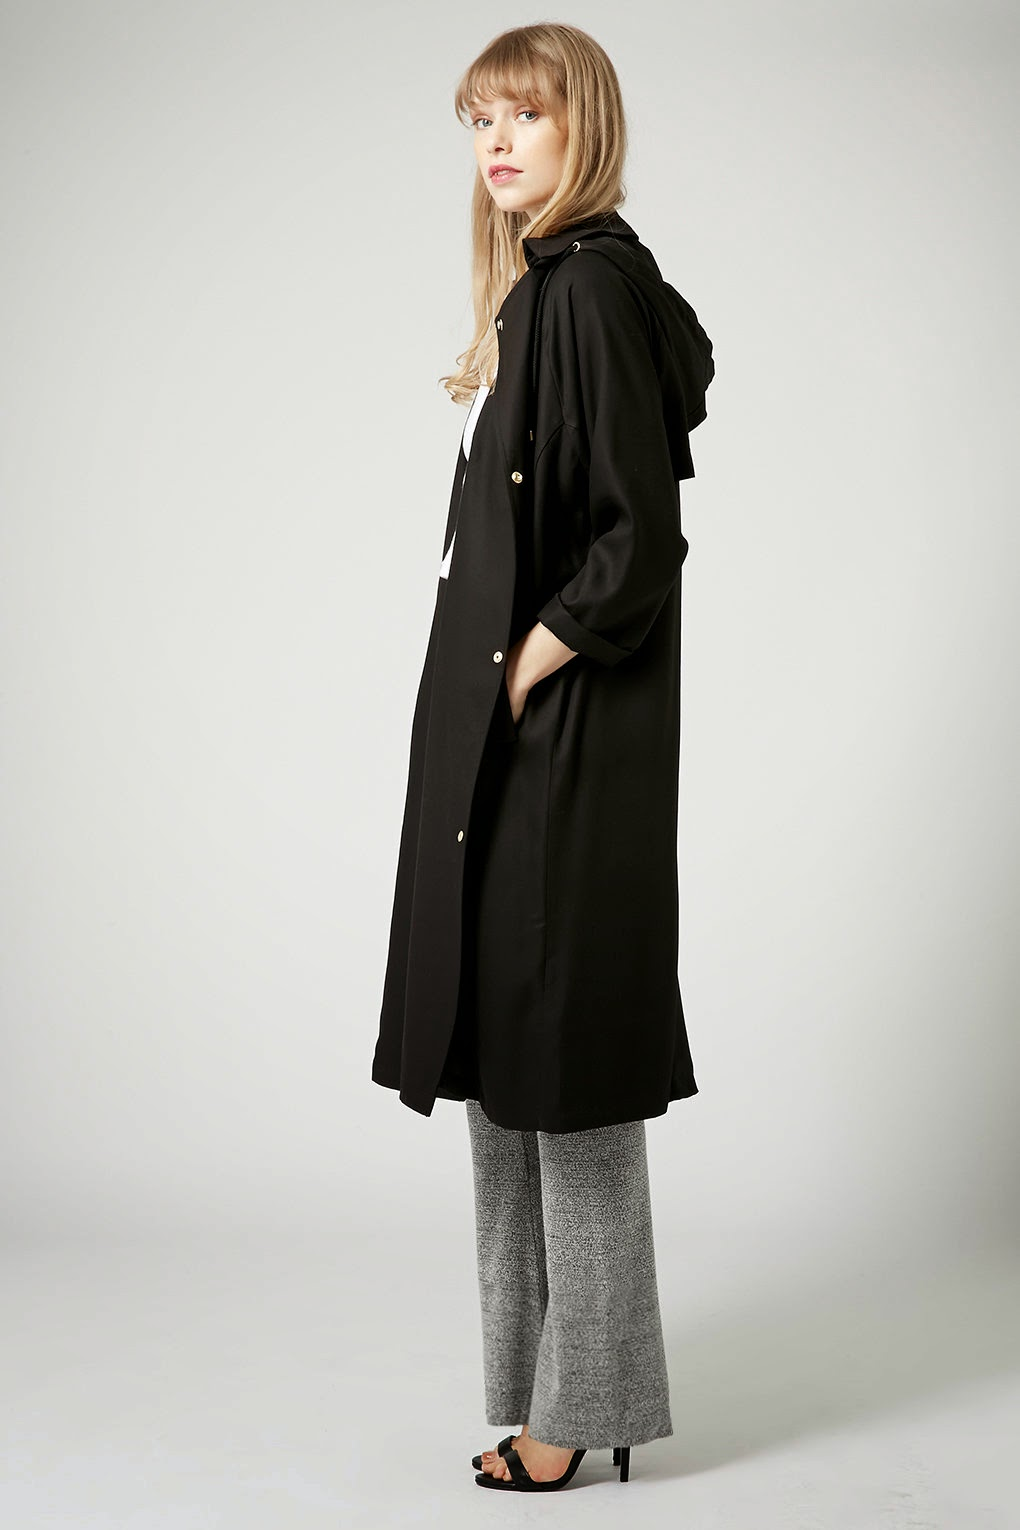 topshop long black coat, topshop black coat 2015,